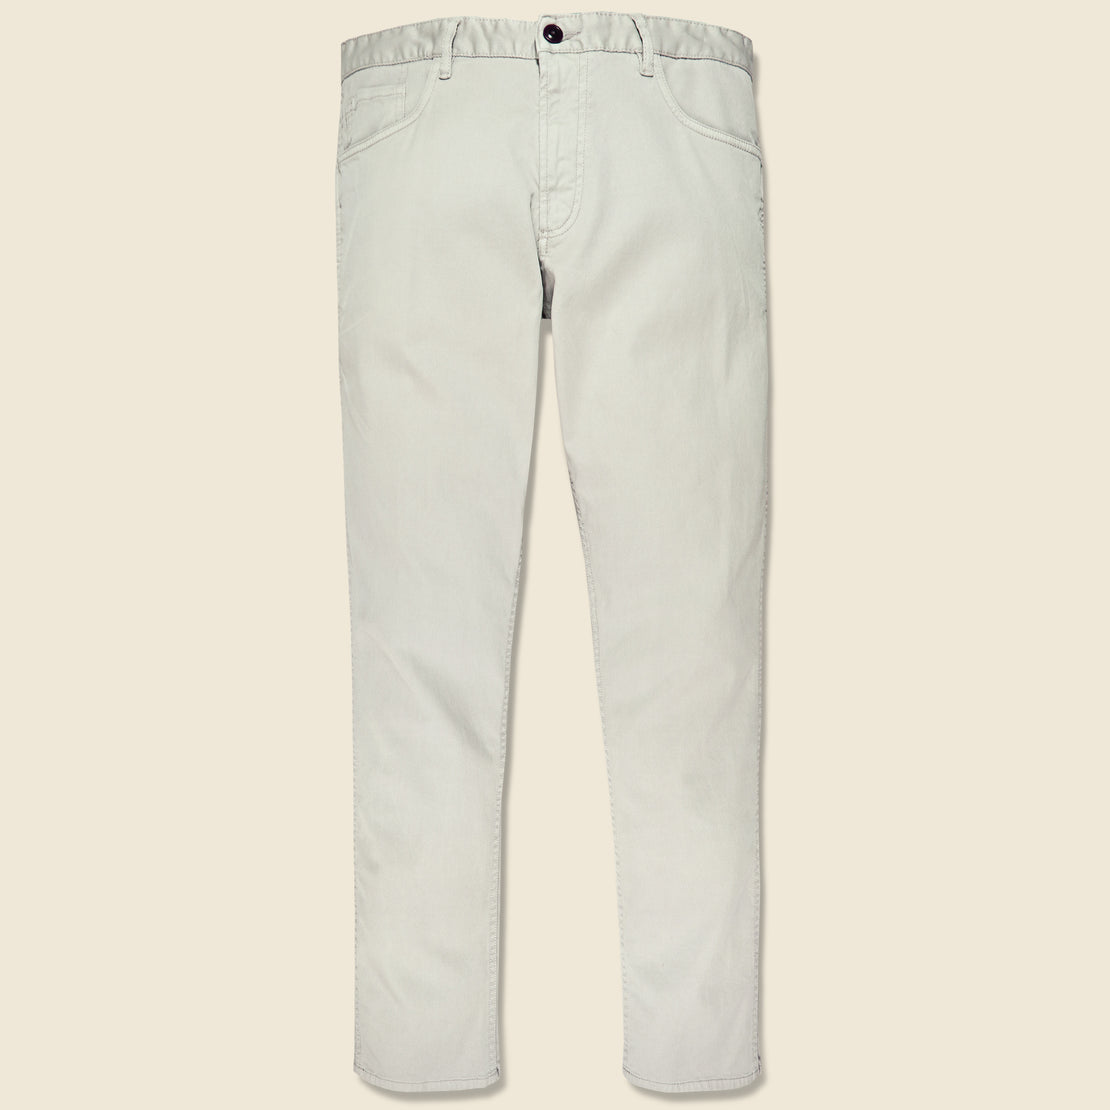 Faherty Comfort Twill Jean - Stone